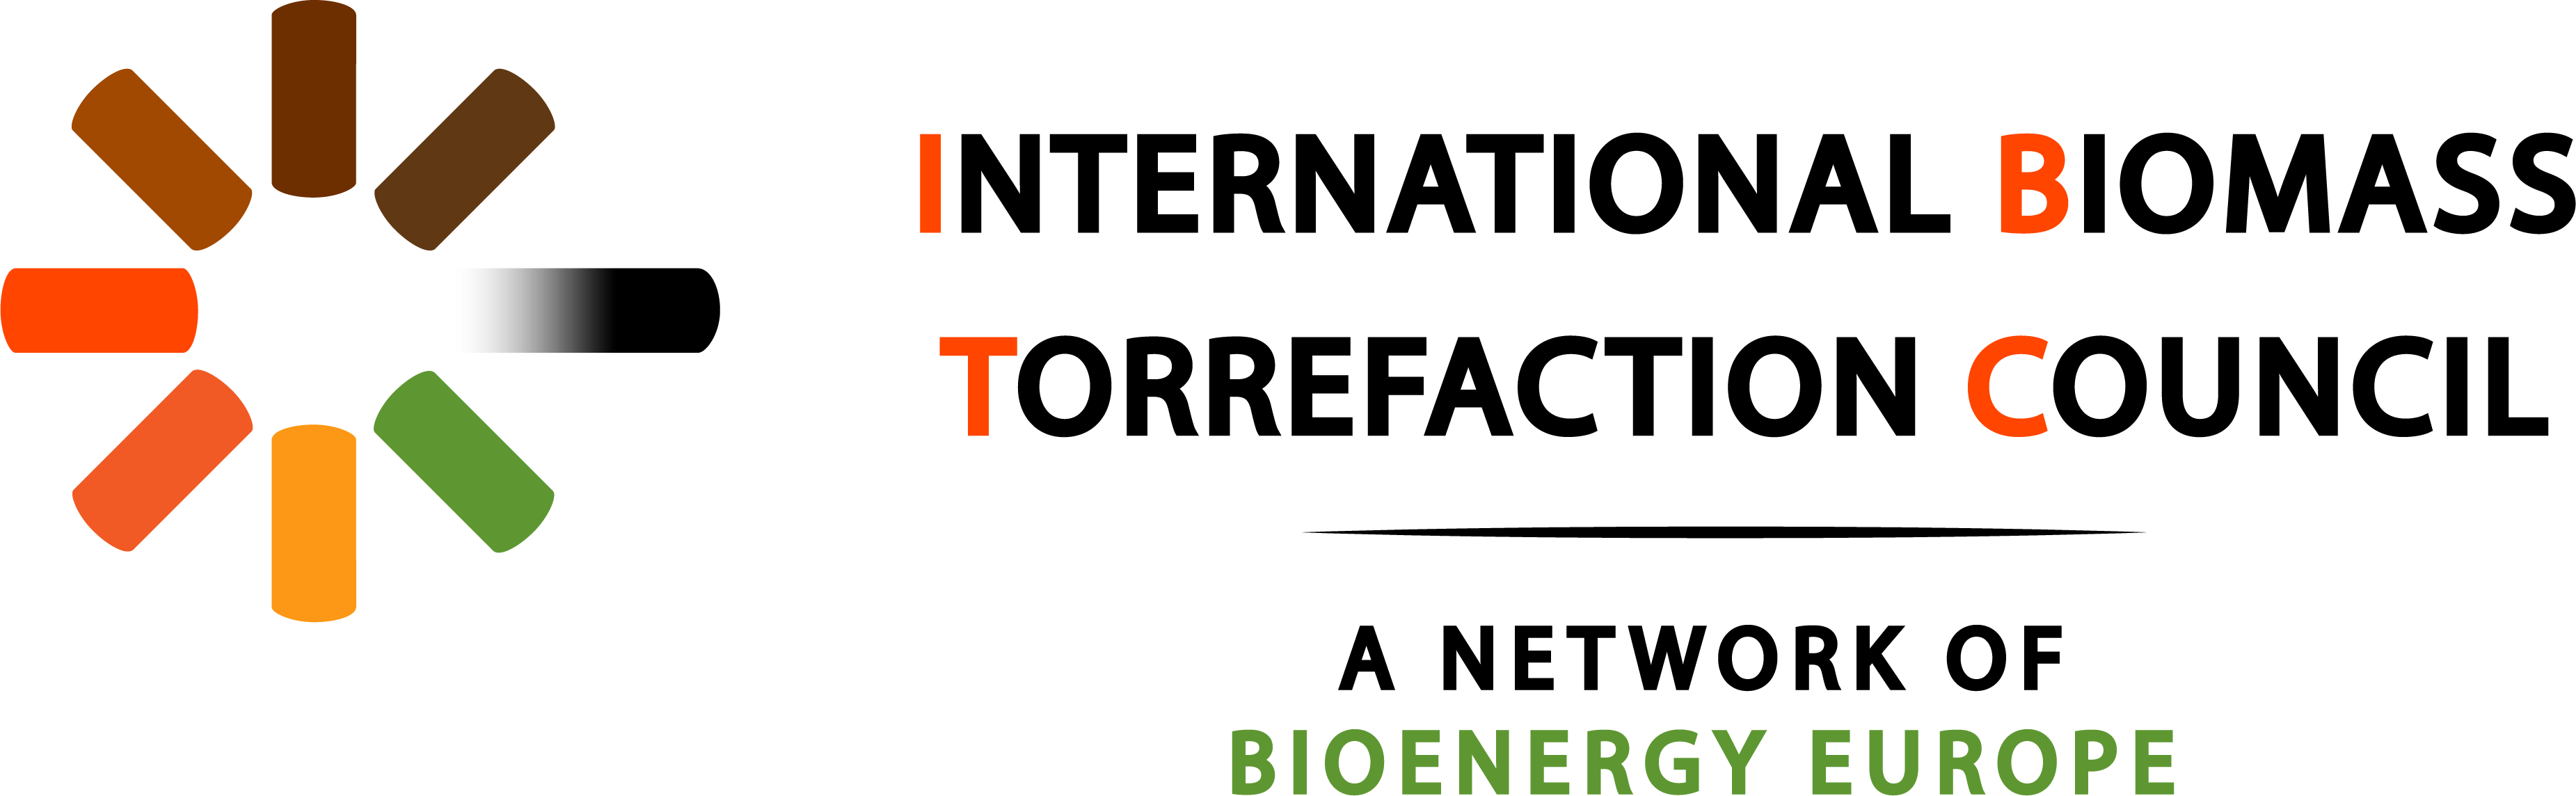 International Biomass Torrefaction Council